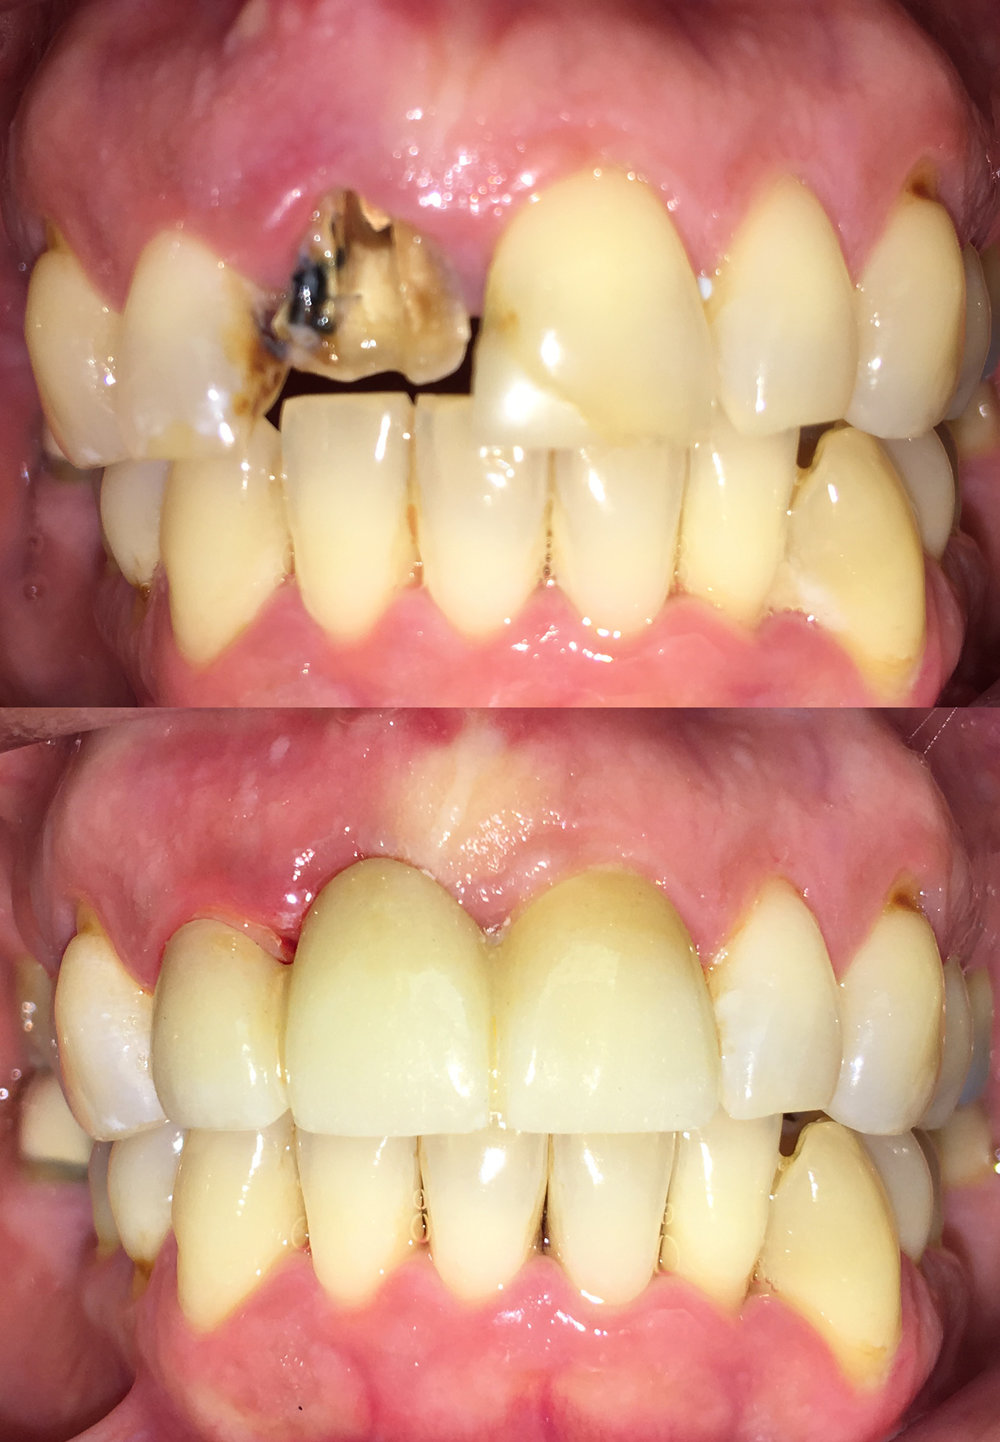 Extraction and bridge to replace missing tooth